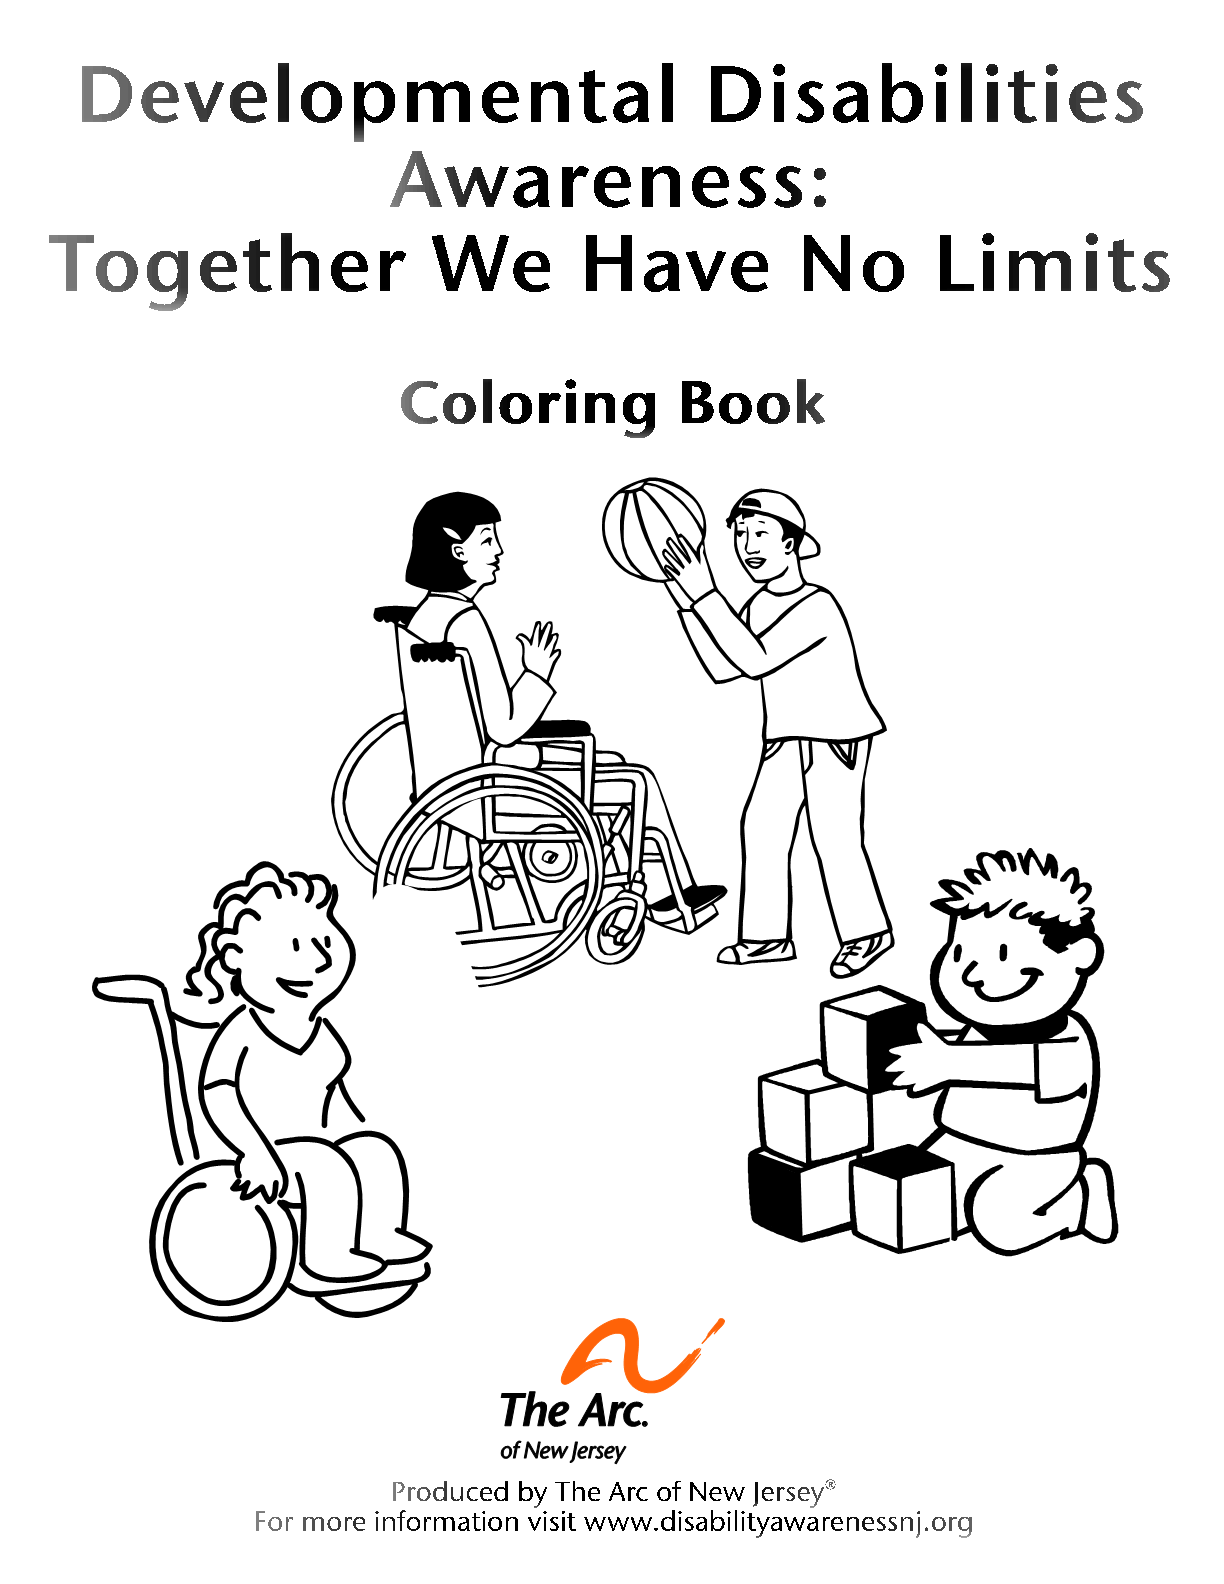 DD Awareness Coloring Book